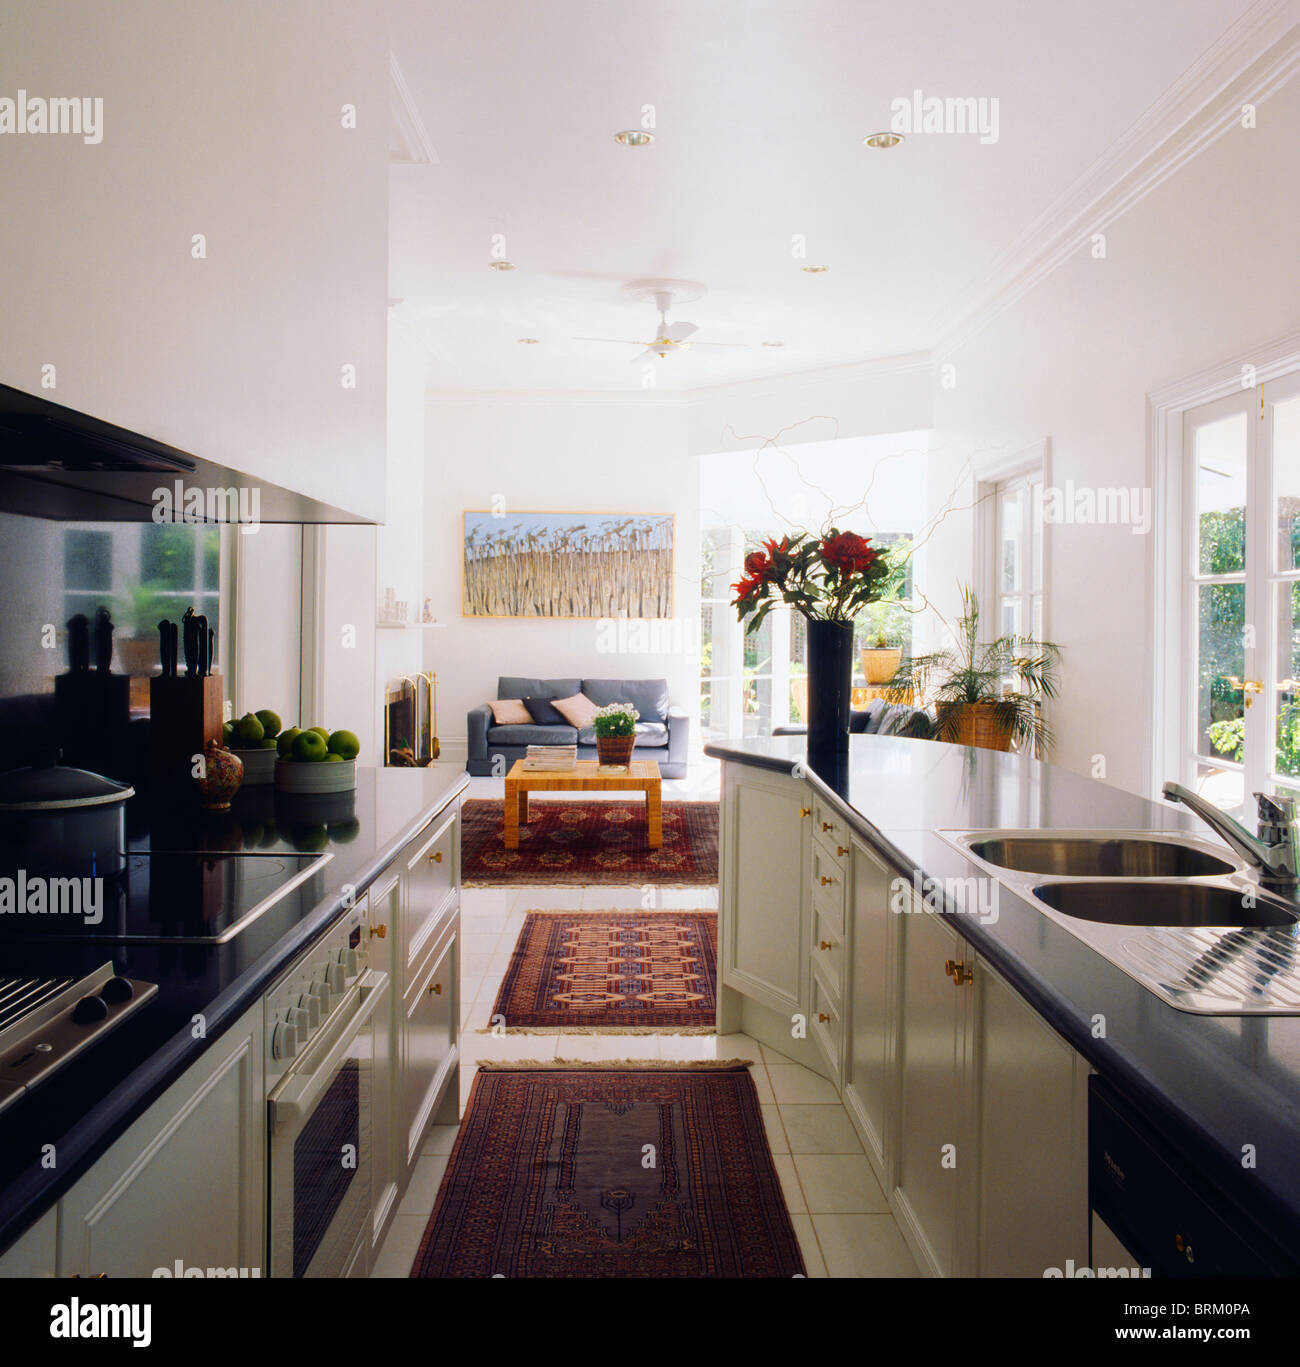 Rugs On Floor In Open-plan White Galley Kitchen With Black